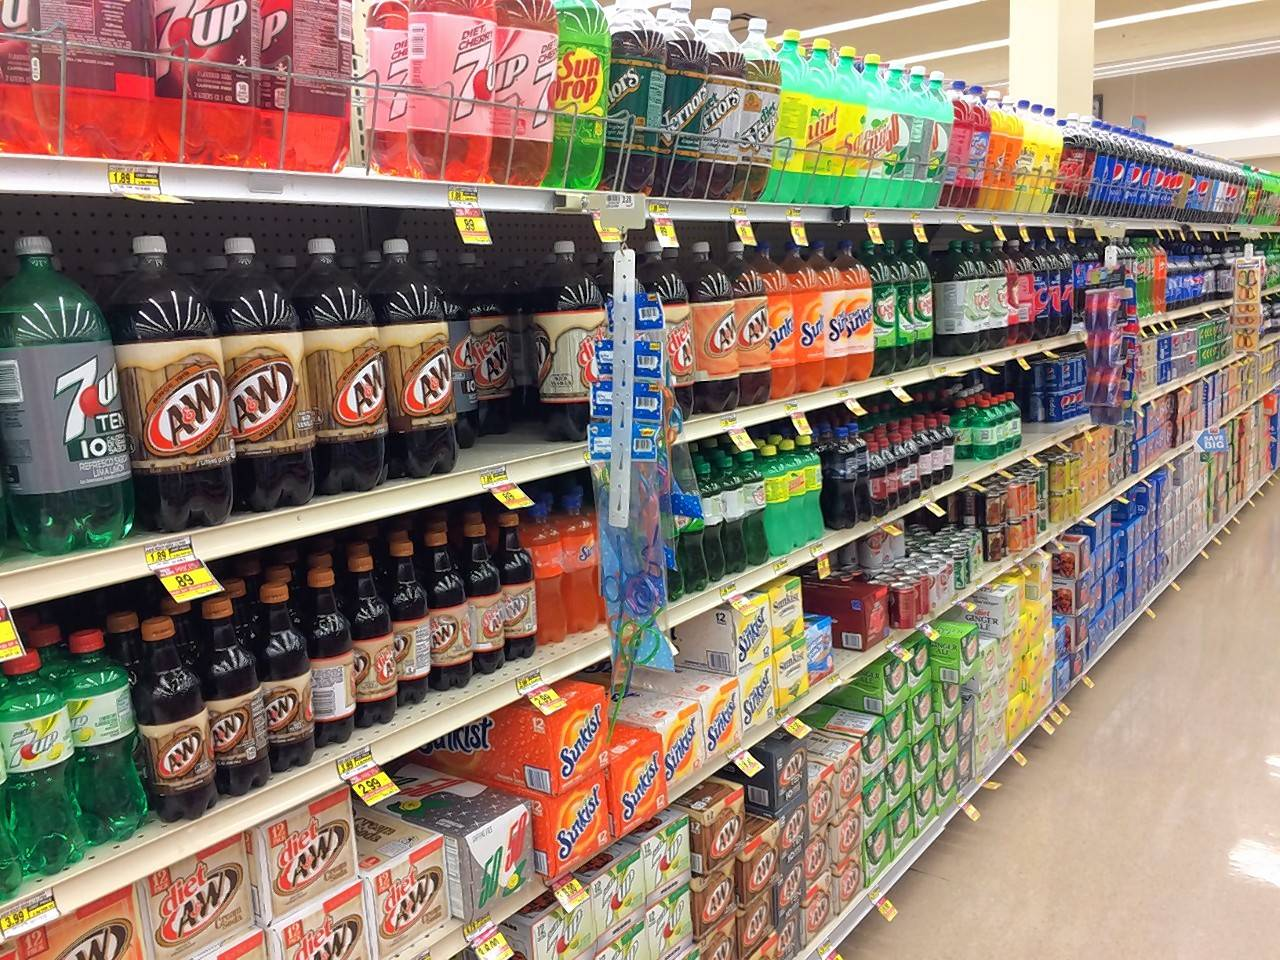 Add about 10% to cost of pop: Cook County OKs soda tax